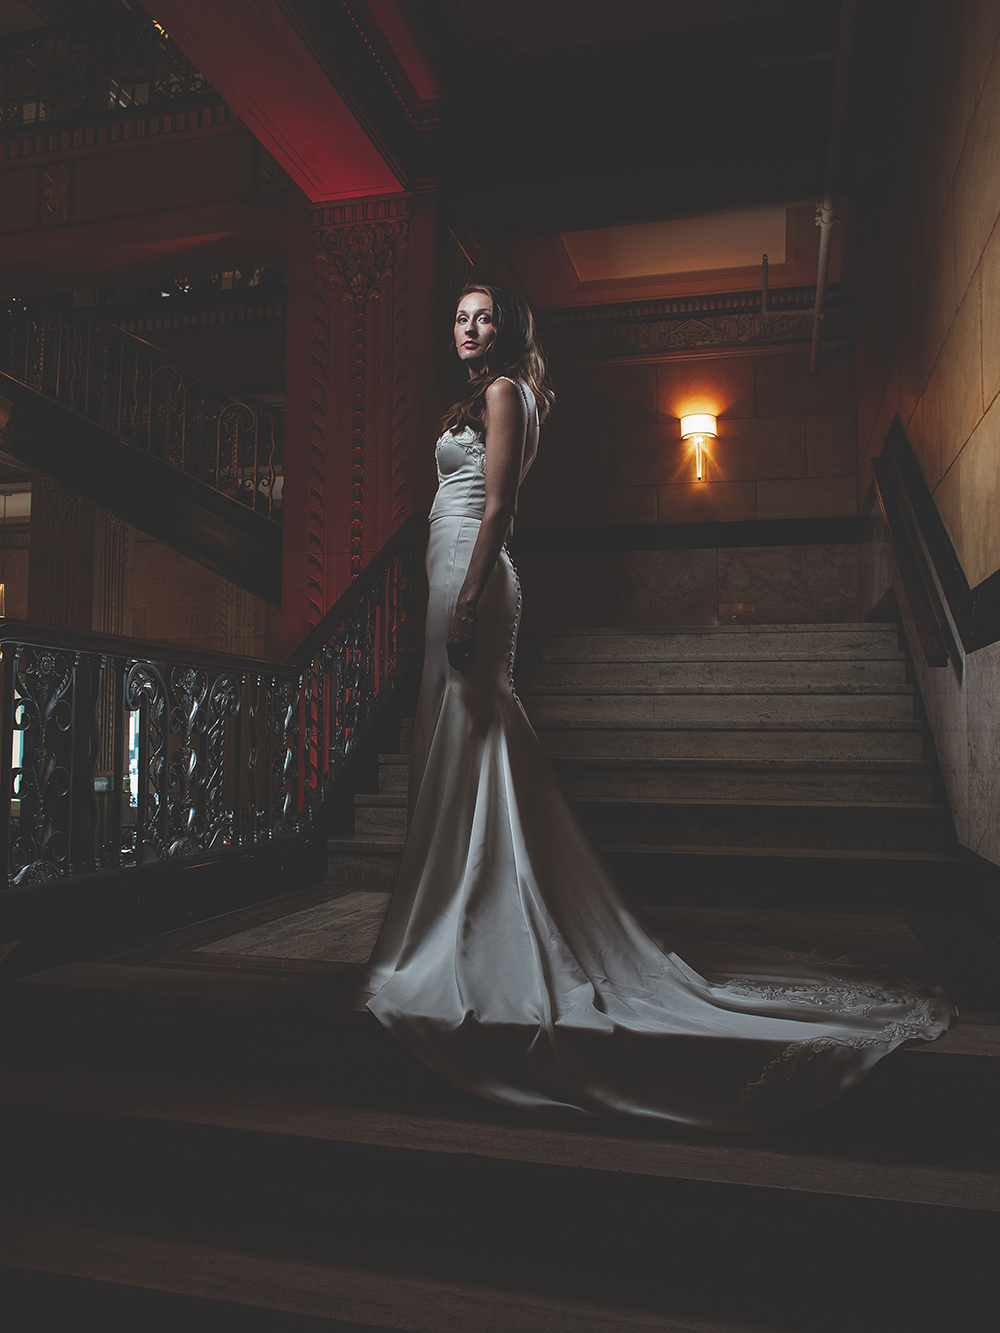 the-grand-hall-kansas-city-wedding-photographer-jason-domingues-photography-kc-anna-cory-blog-post-_0035.JPG